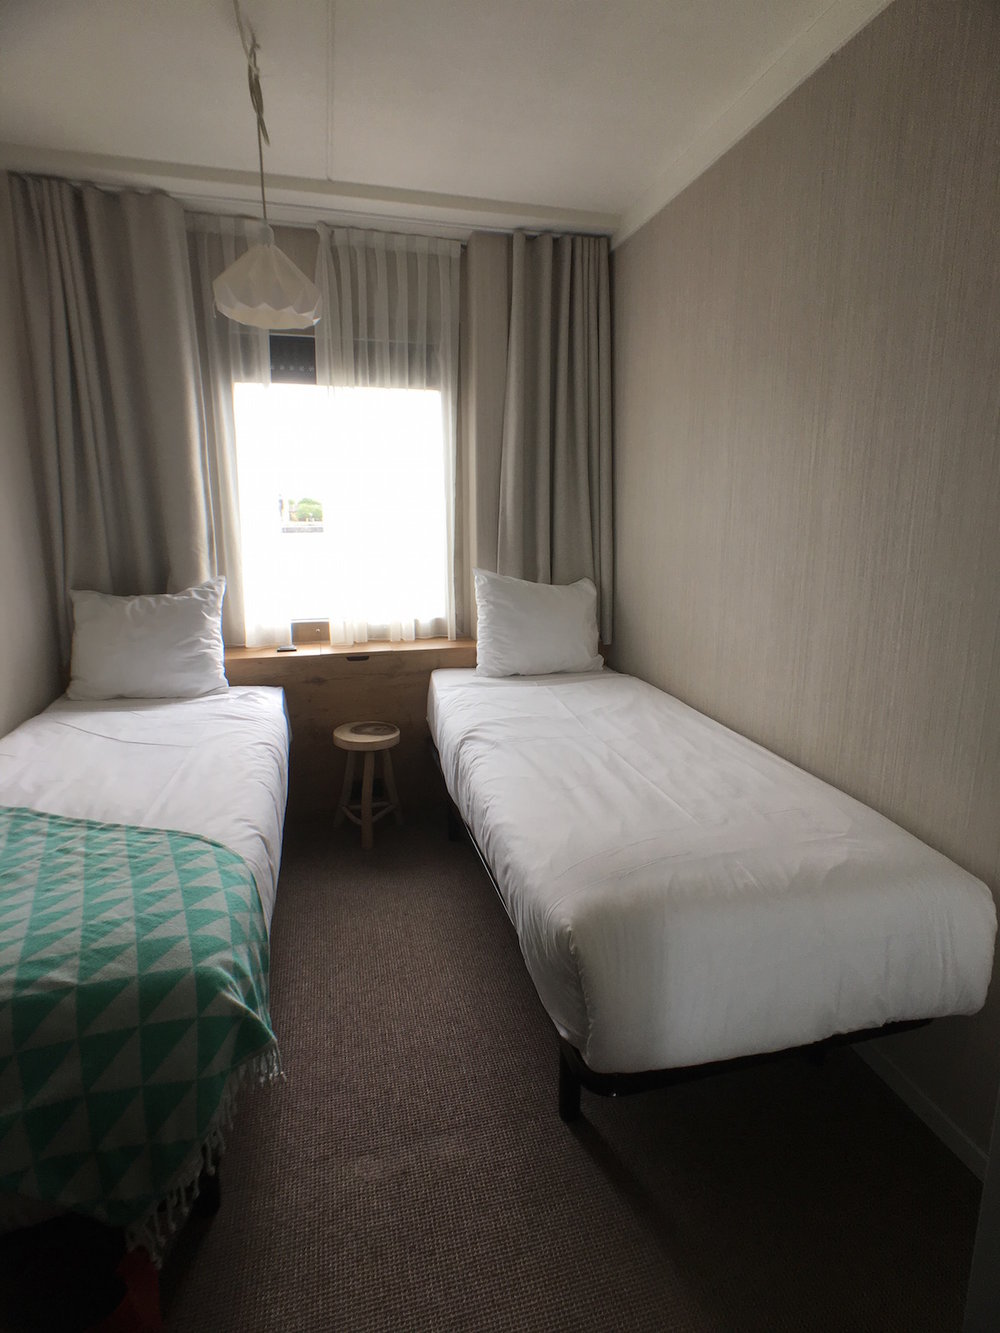 hoiberlin-london-goodhotel-zimmer.jpg